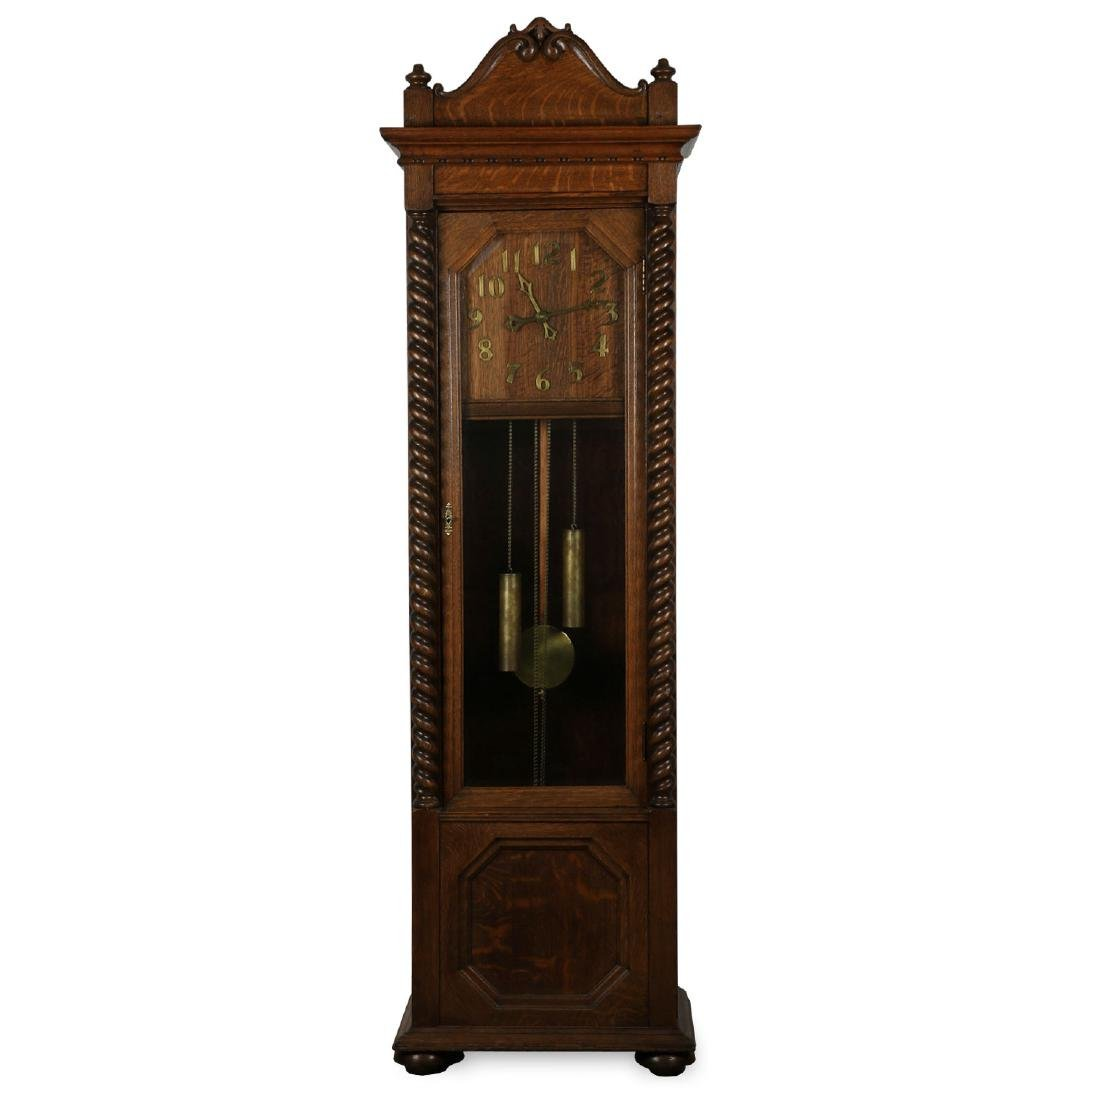 Antique & Vintage Fireplace Accessories for Sale in Online Auctions